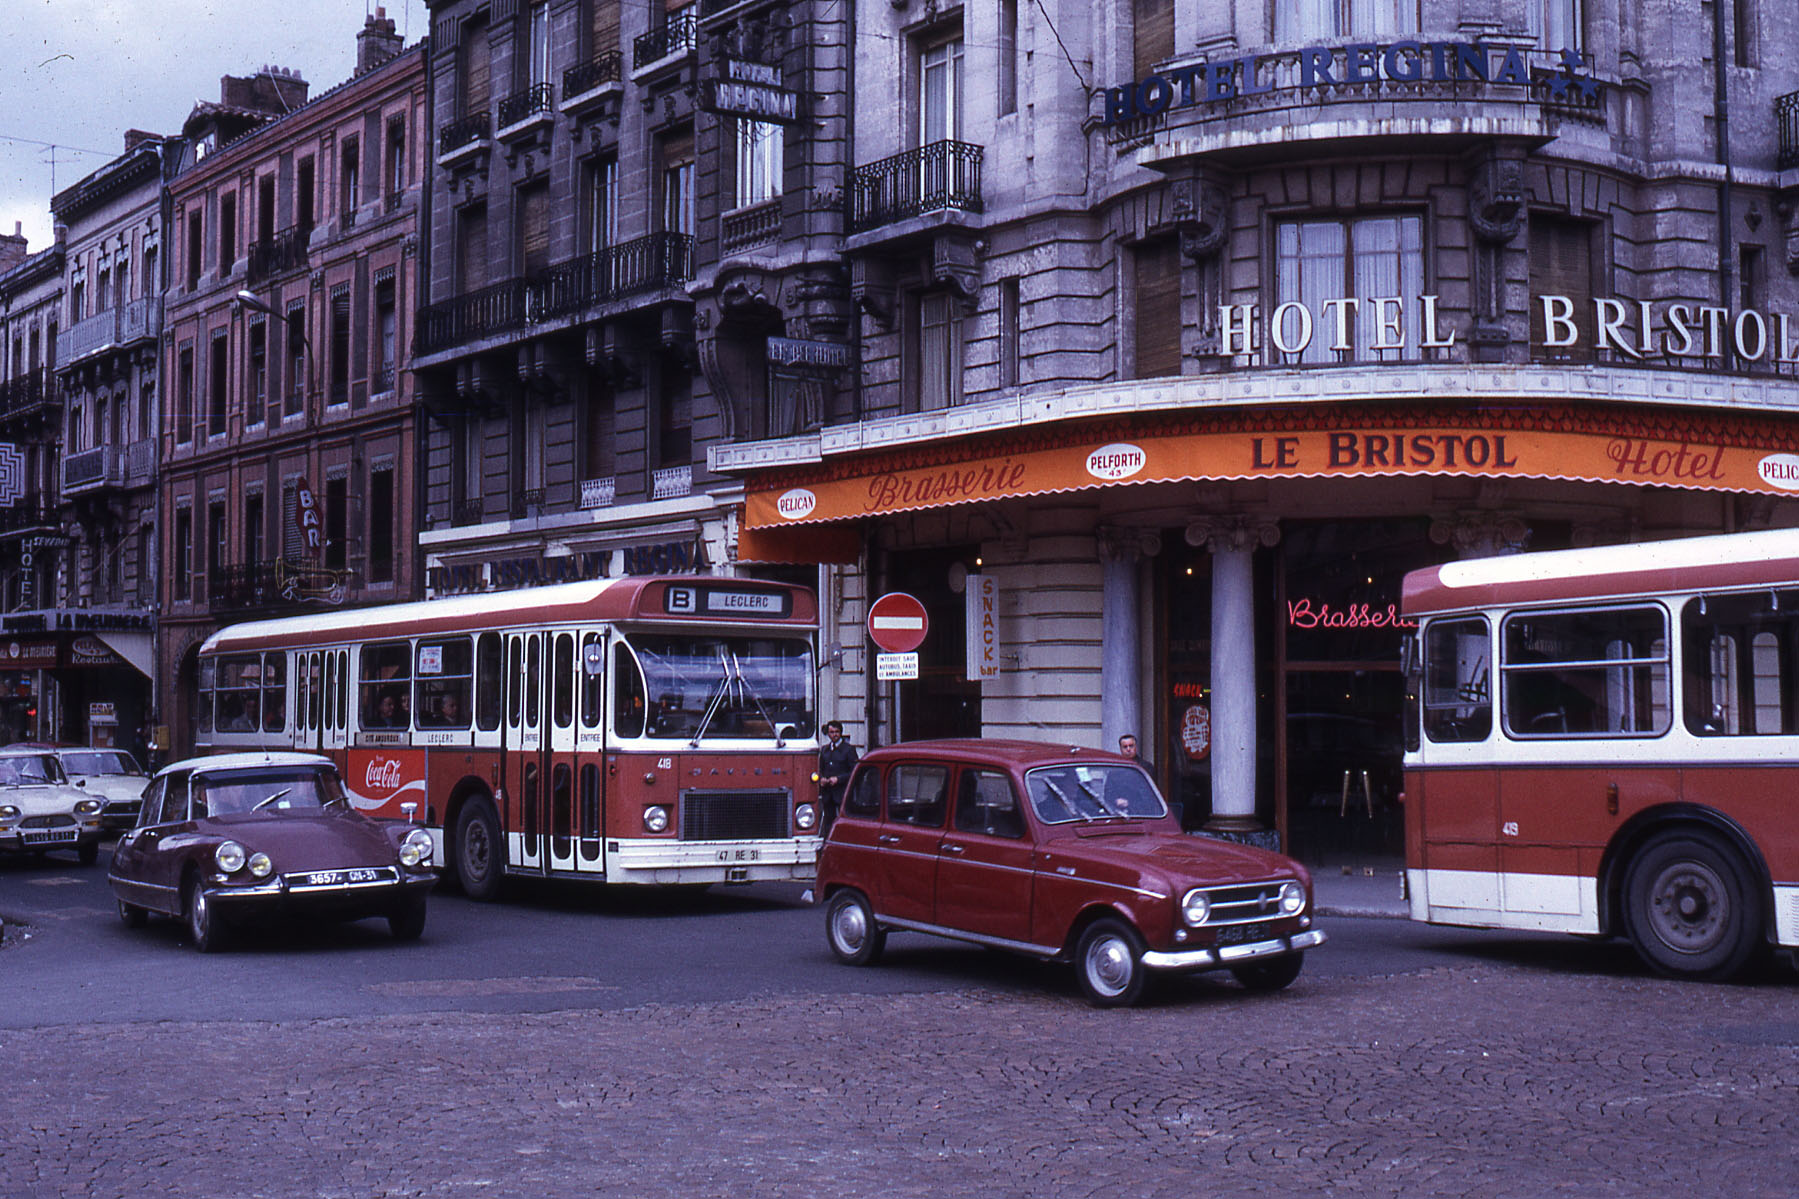 file jhm 1972 0779 toulouse bus wikimedia commons. Black Bedroom Furniture Sets. Home Design Ideas